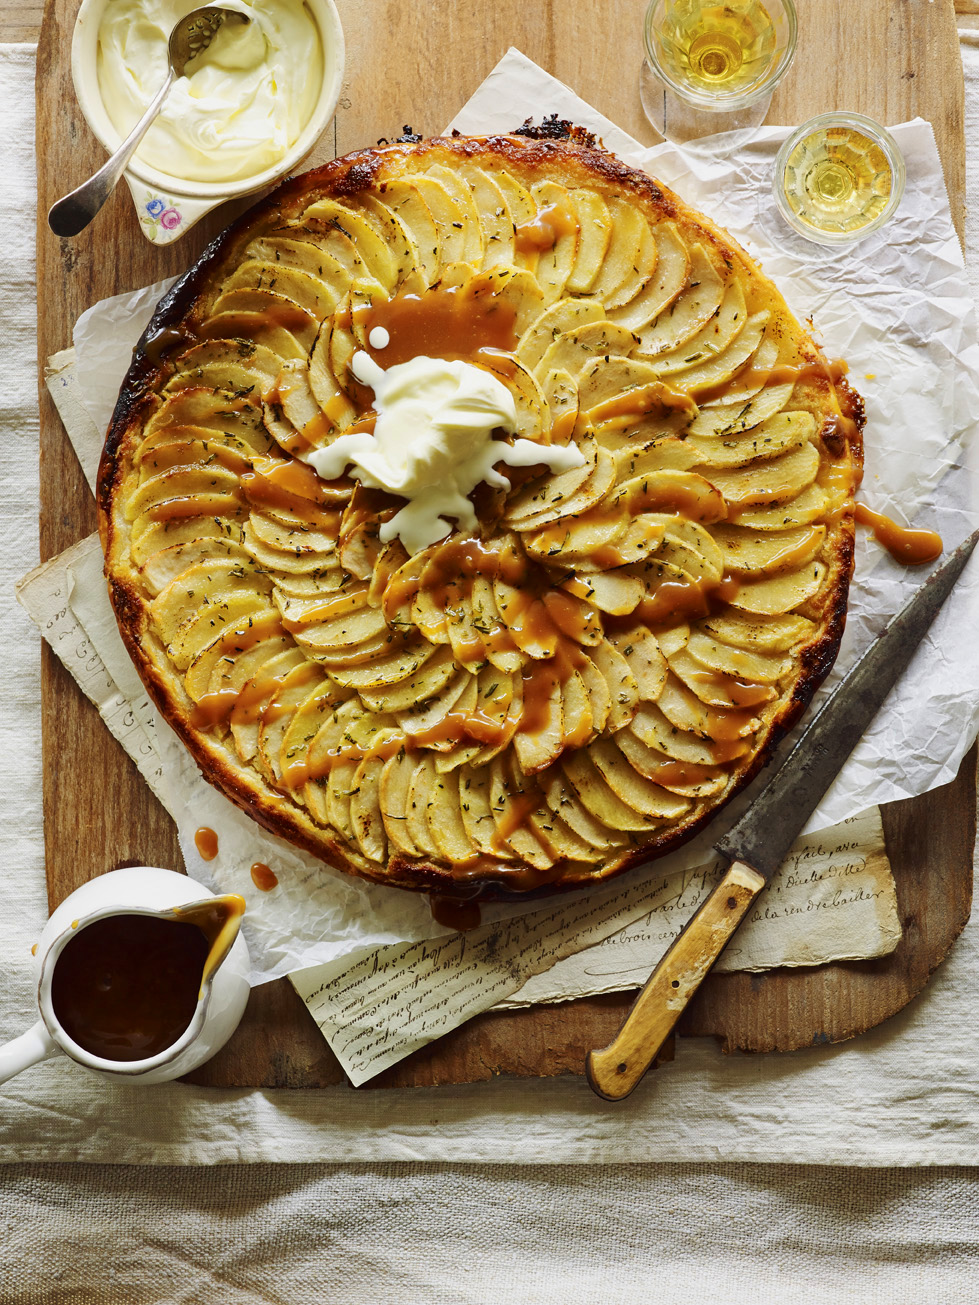 Apple tart 2.jpg